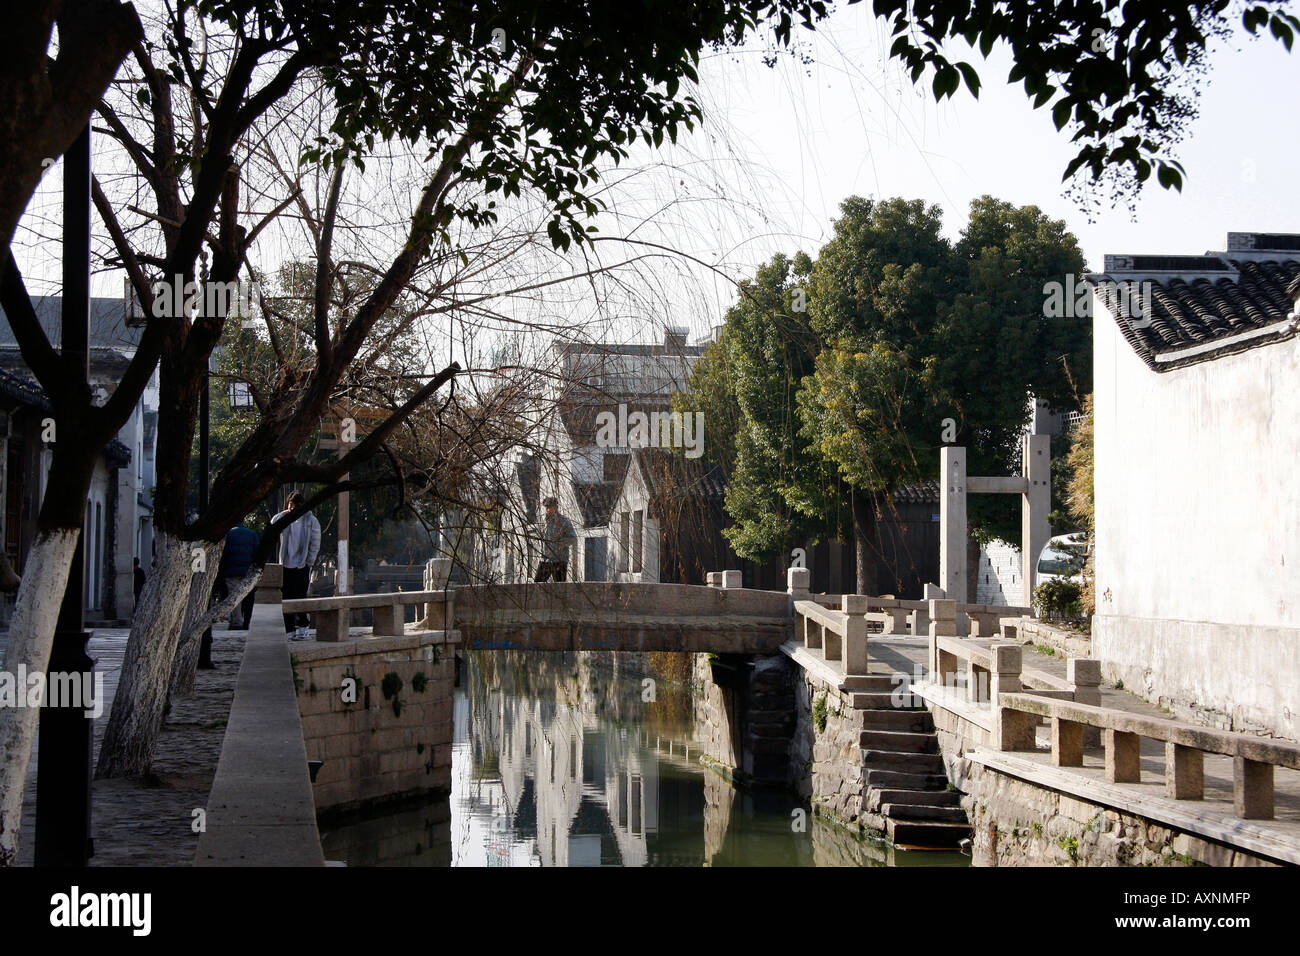 Canal bridge in the 'old town' of Suzhou China - Stock Image